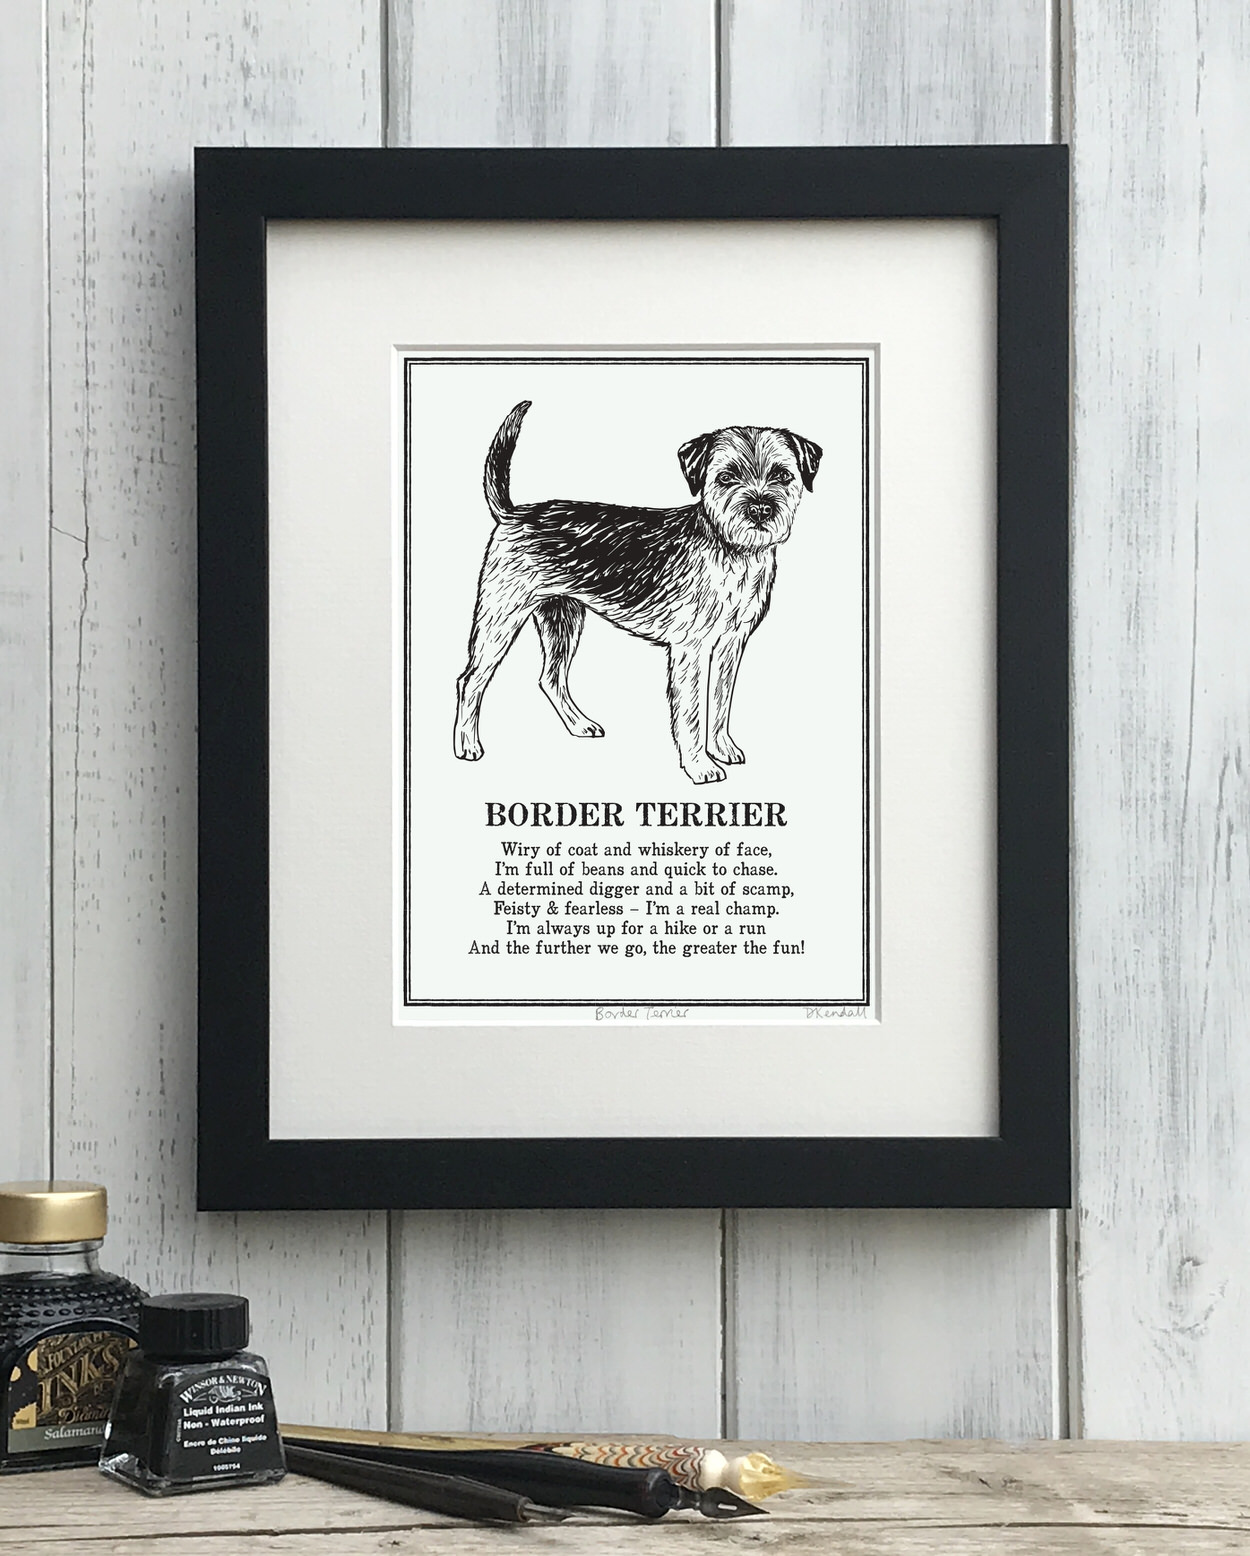 Border Terrier Illustrated Poem Print | The Enlightened Hound